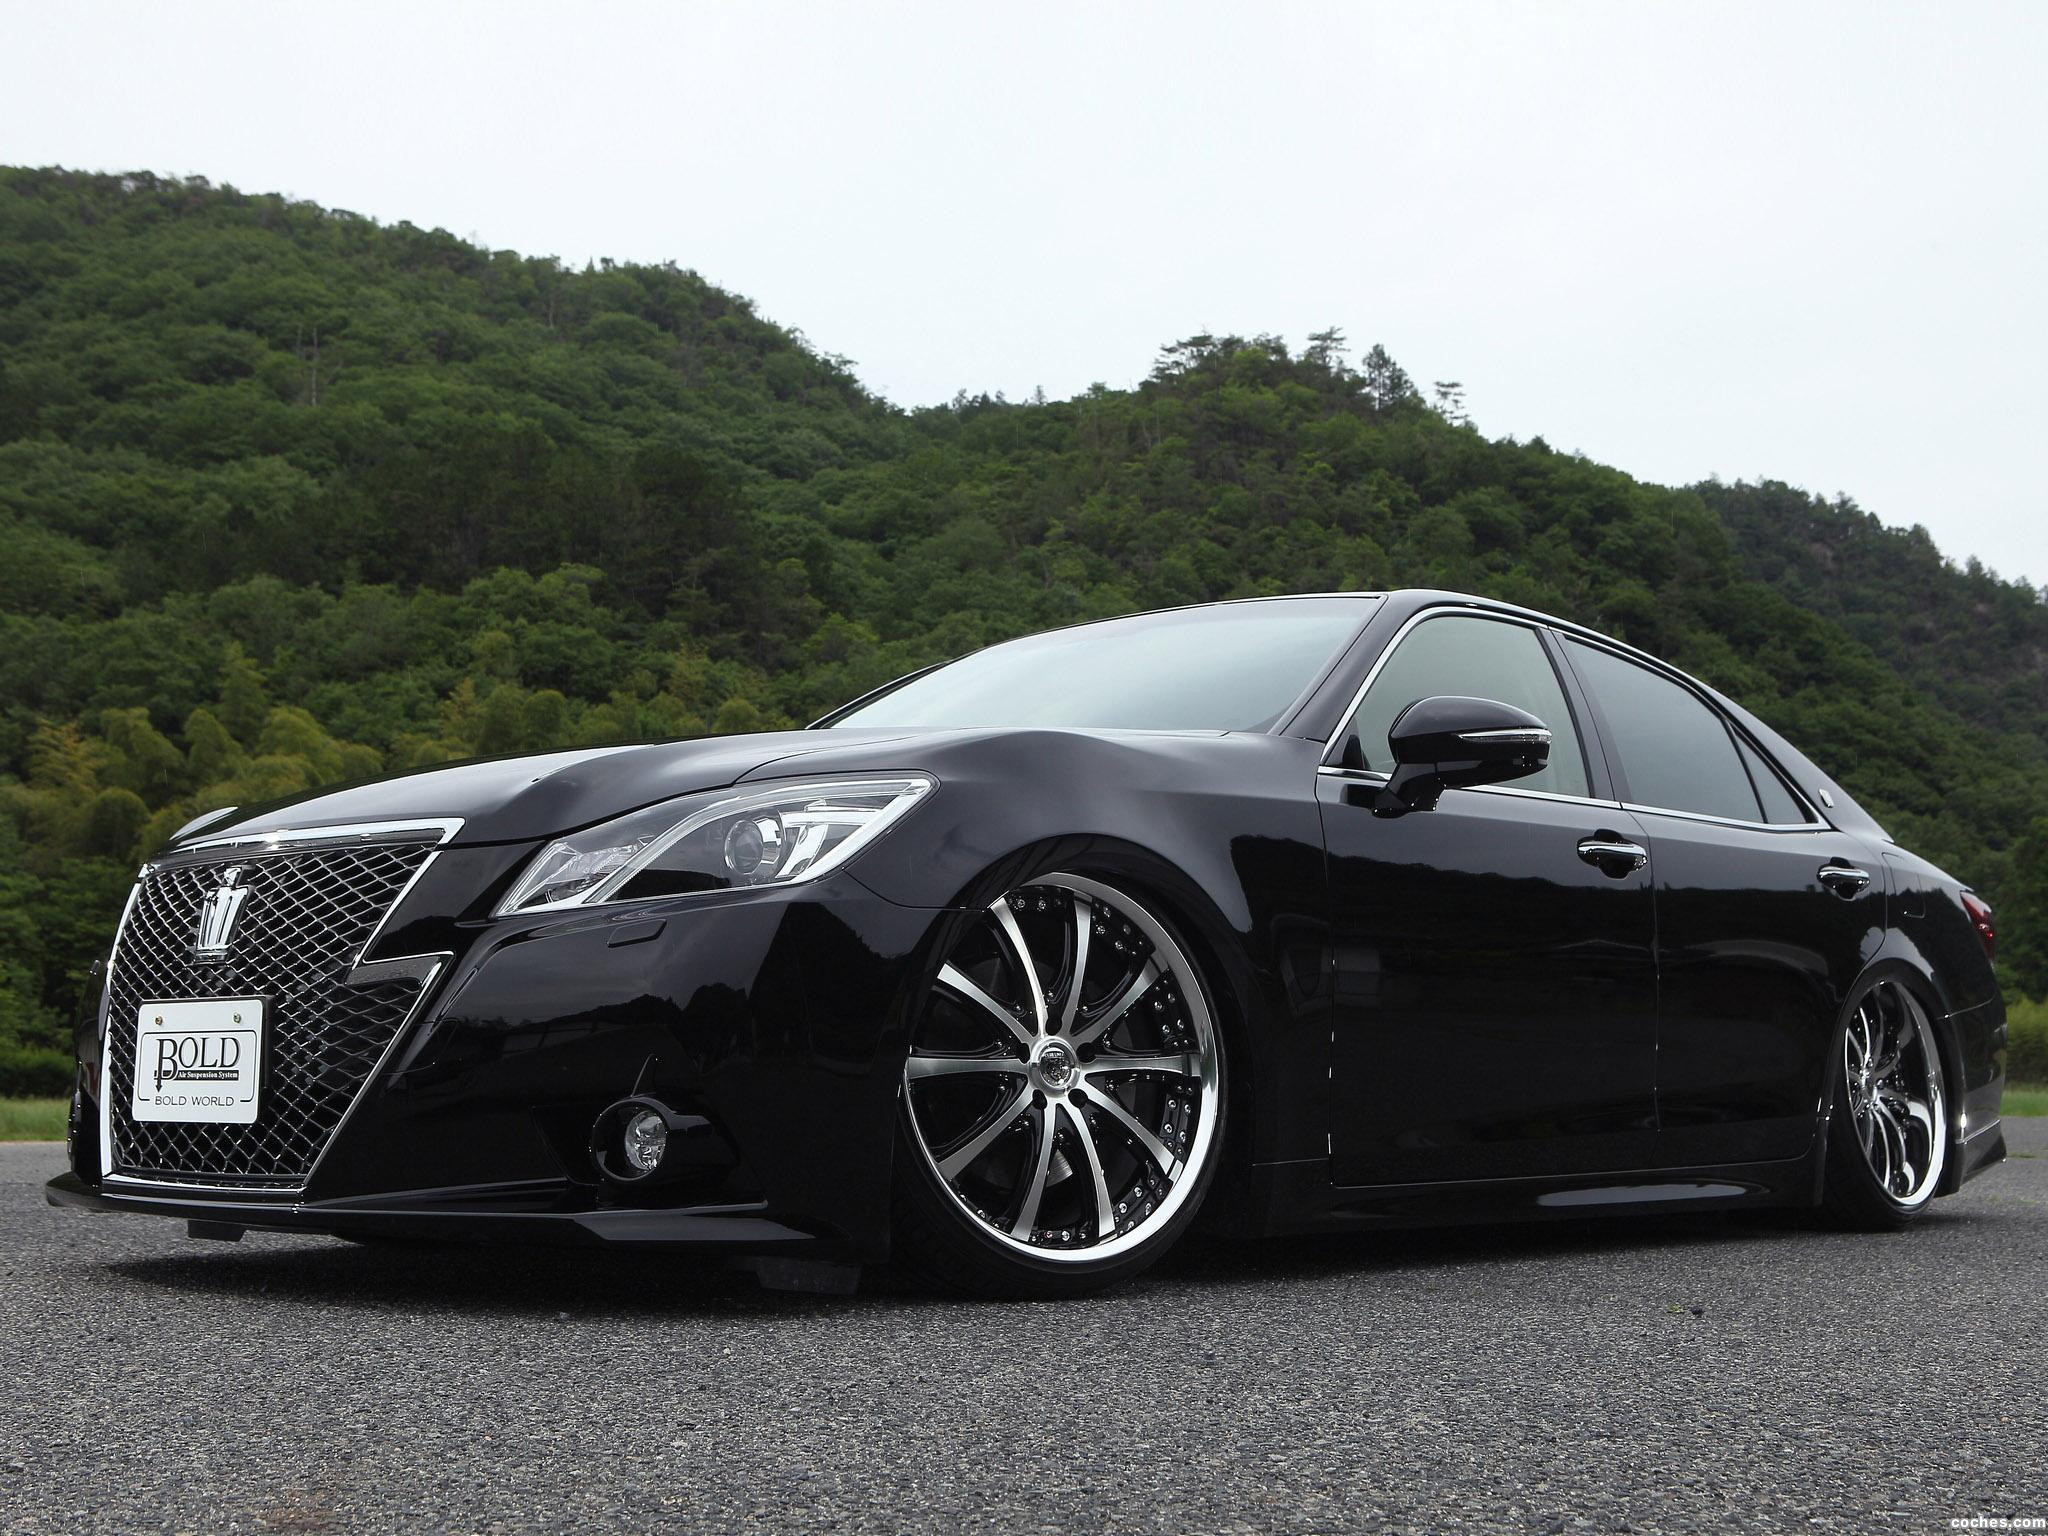 Foto 1 de Toyota Crown Athlete Bold World S210 2013